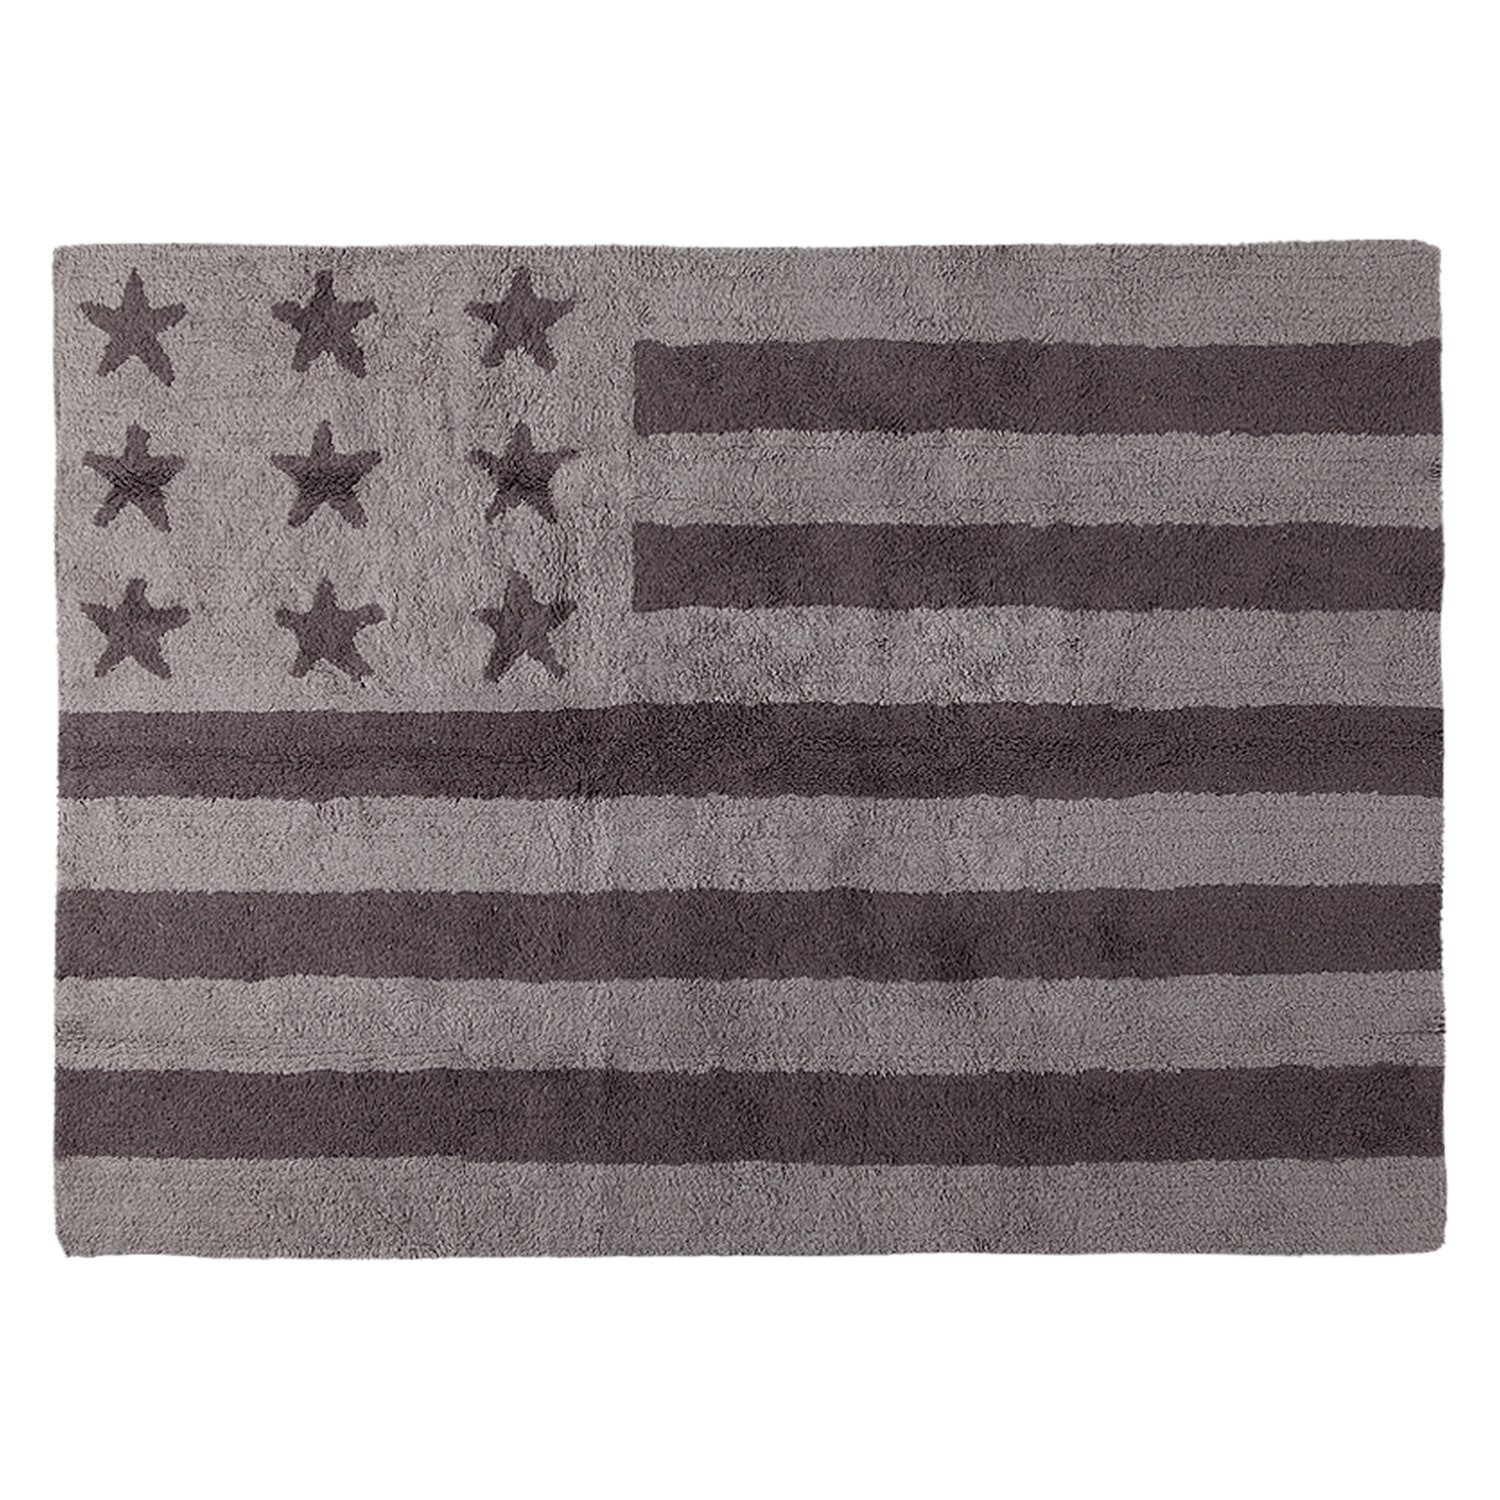 Lorena Canals American Flag Machine Washable Kids Rug, 4 x 5 Feet, Handmade From 100% Natural Cotton and Non-Toxic Dyes, Perfect for Nursery, Baby, Playroom, or Childrens Rooms